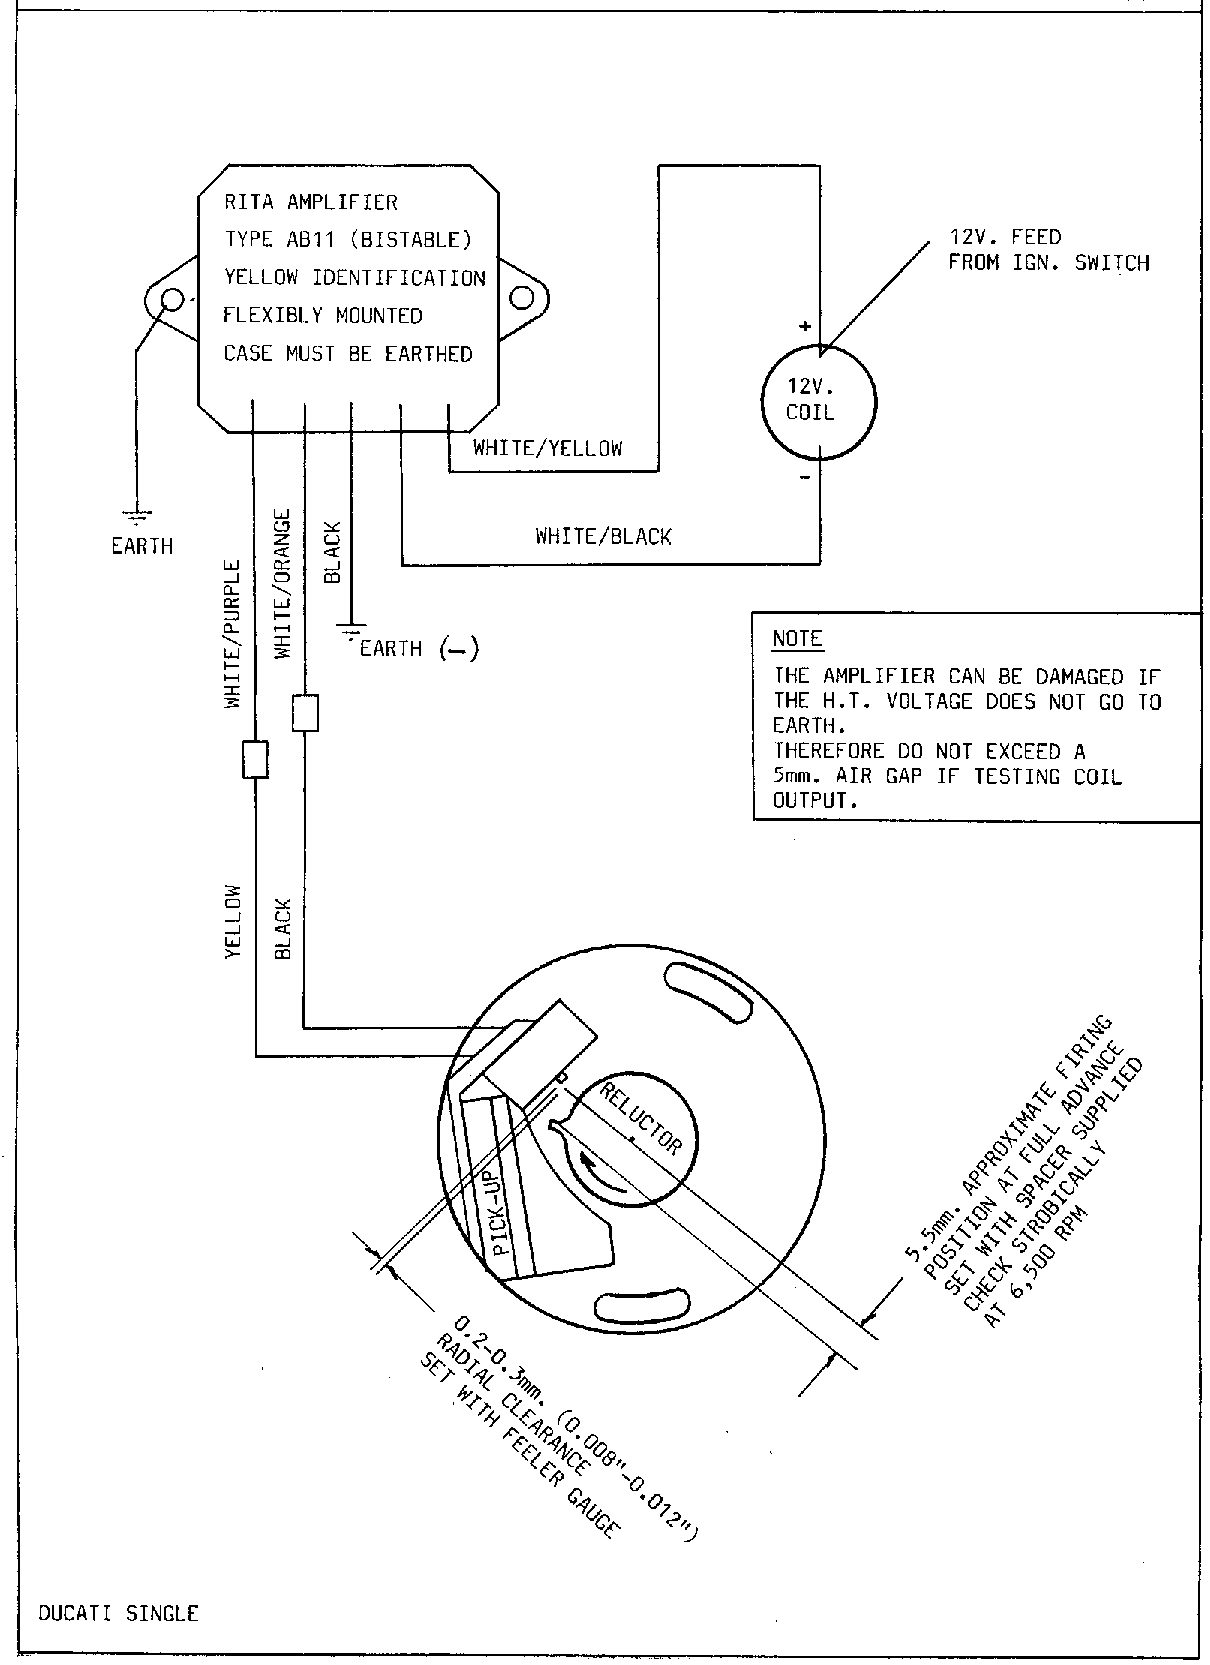 Diagram  Lucas Rita Electronic Ignition Wiring Diagram Full Version Hd Quality Wiring Diagram